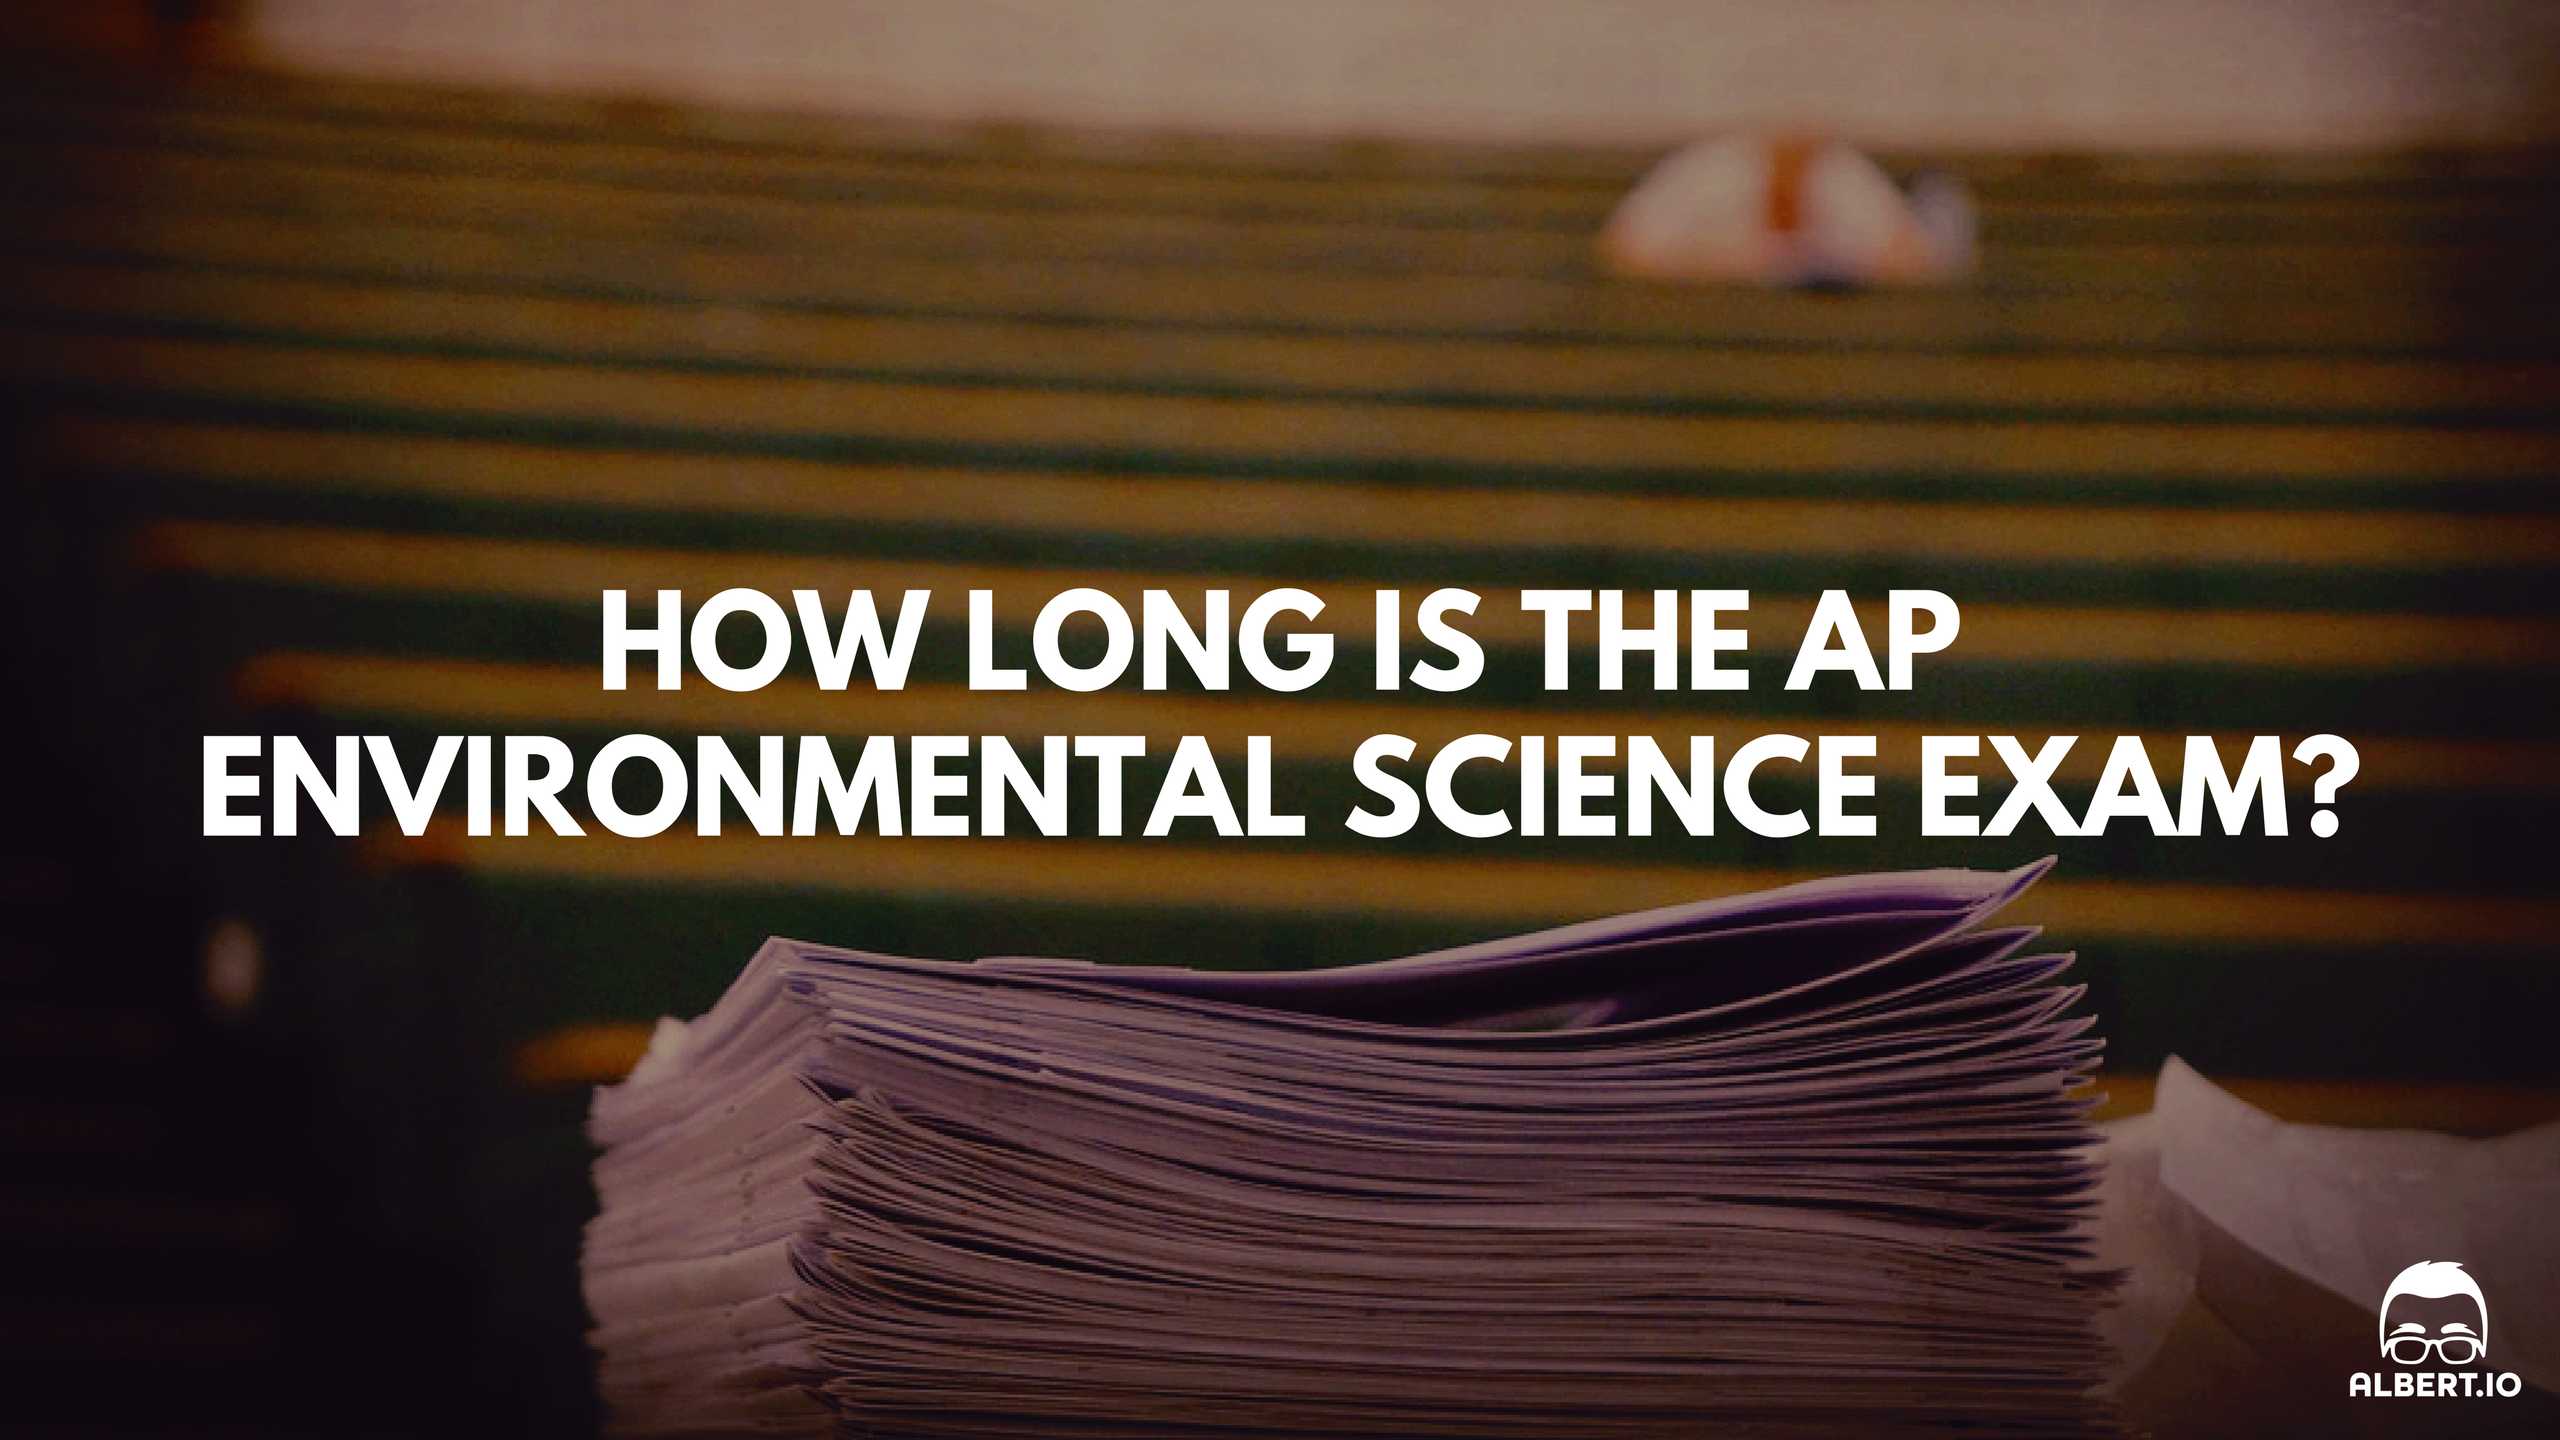 ap environmental science homework help Ap environmental science is a course that gives you a chance to learn about the natural world, and to study both human-made and natural environmental problems, as stated on college board currently, however, it is clear that many students are not reaping the full benefits that this course has.